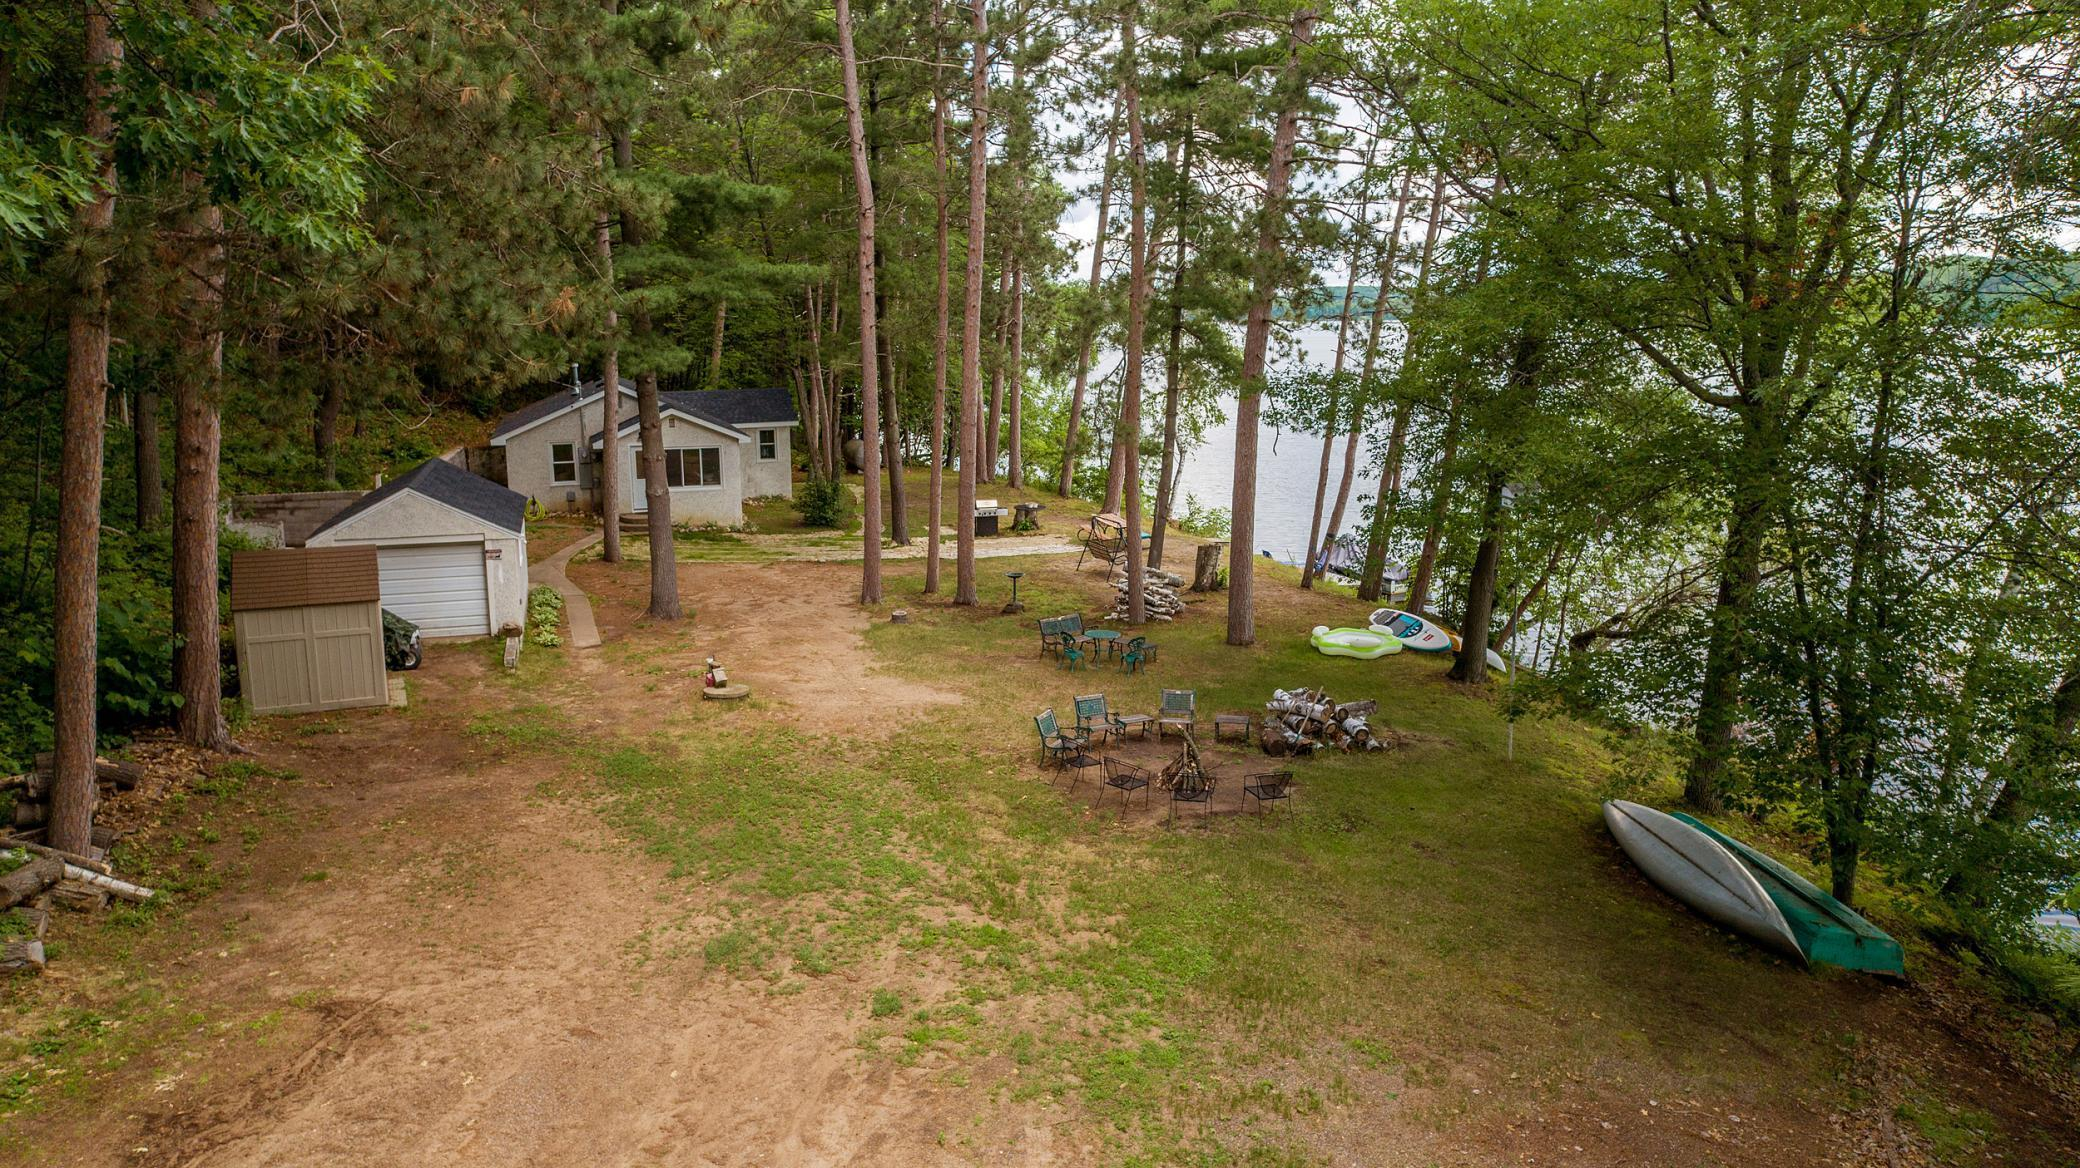 Here is your opportunity to enjoy 308 feet of shoreline and 3 acres of land on private Eagle Lake; which has no public access. Eagle Lake provides exceptional fishing and recreation options. This hard to find property features a 2 bedroom 1 bath home situated near the waters edge with updated cabinetry, spacious living room, four season porch, and new roof. The easterly views and serenity of this property are tough to beat! A true up north escape!